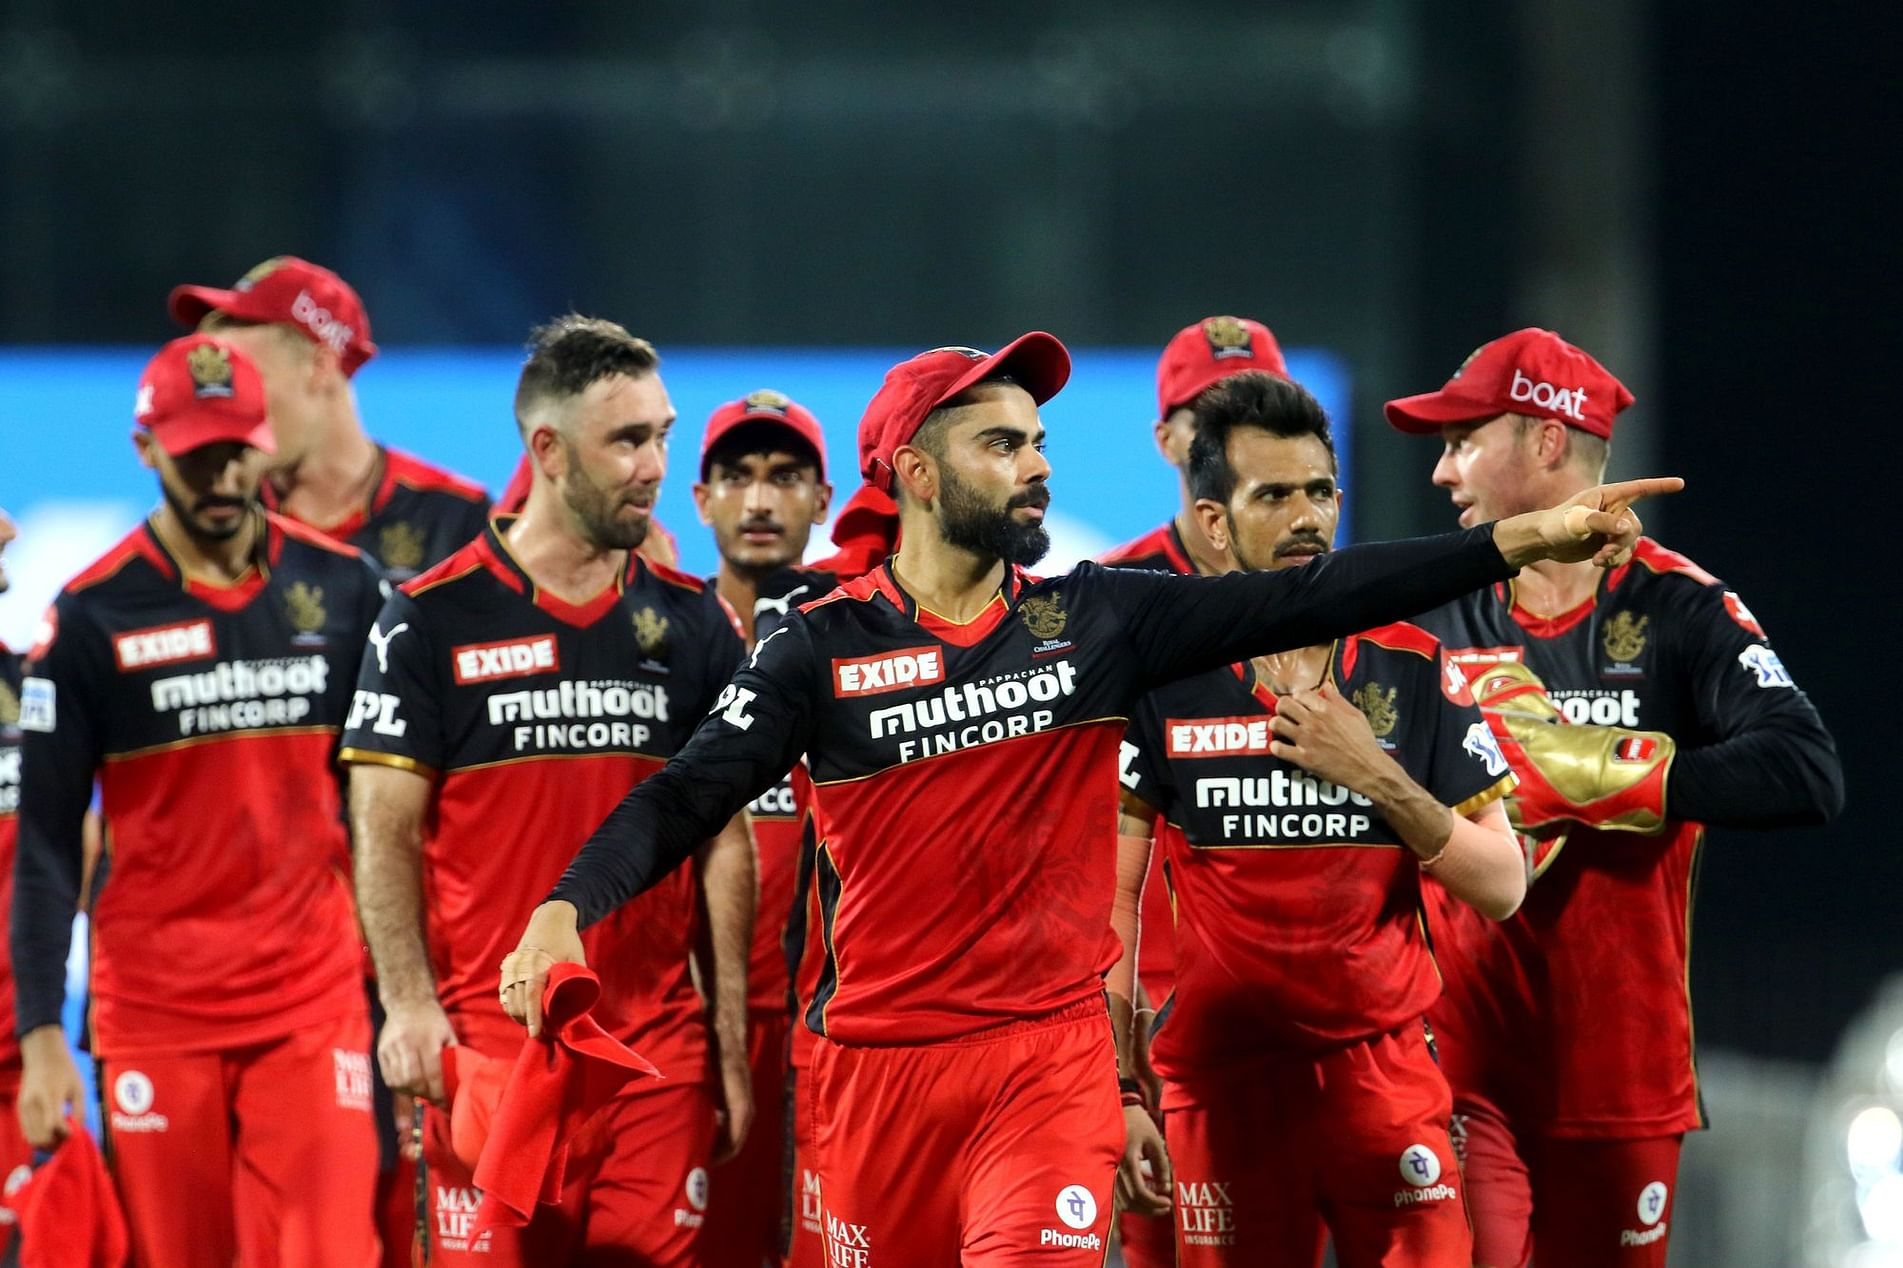 IPL 2021: Royal Challengers Bangalore (RCB) Squad, Schedule, Updated Time, And Venue